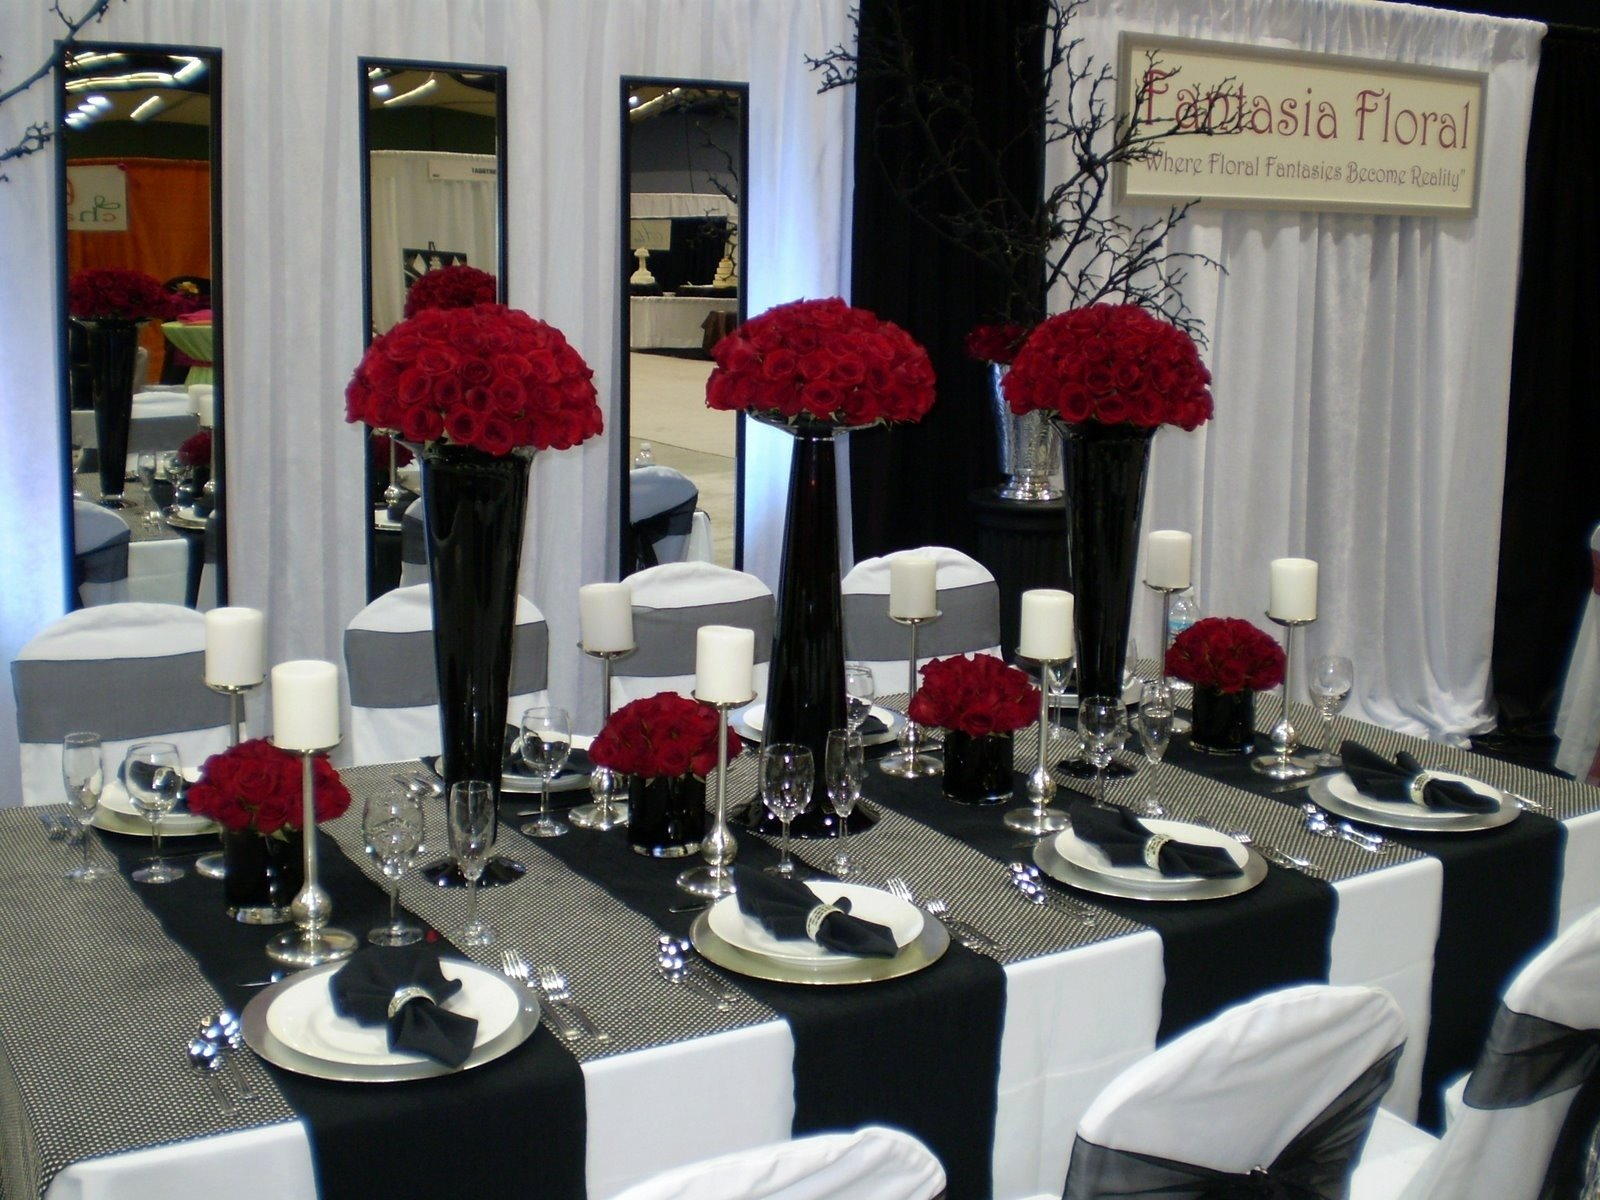 10 Fabulous Red Black And White Wedding Ideas red wedding decorations unique black white red and silver wedding